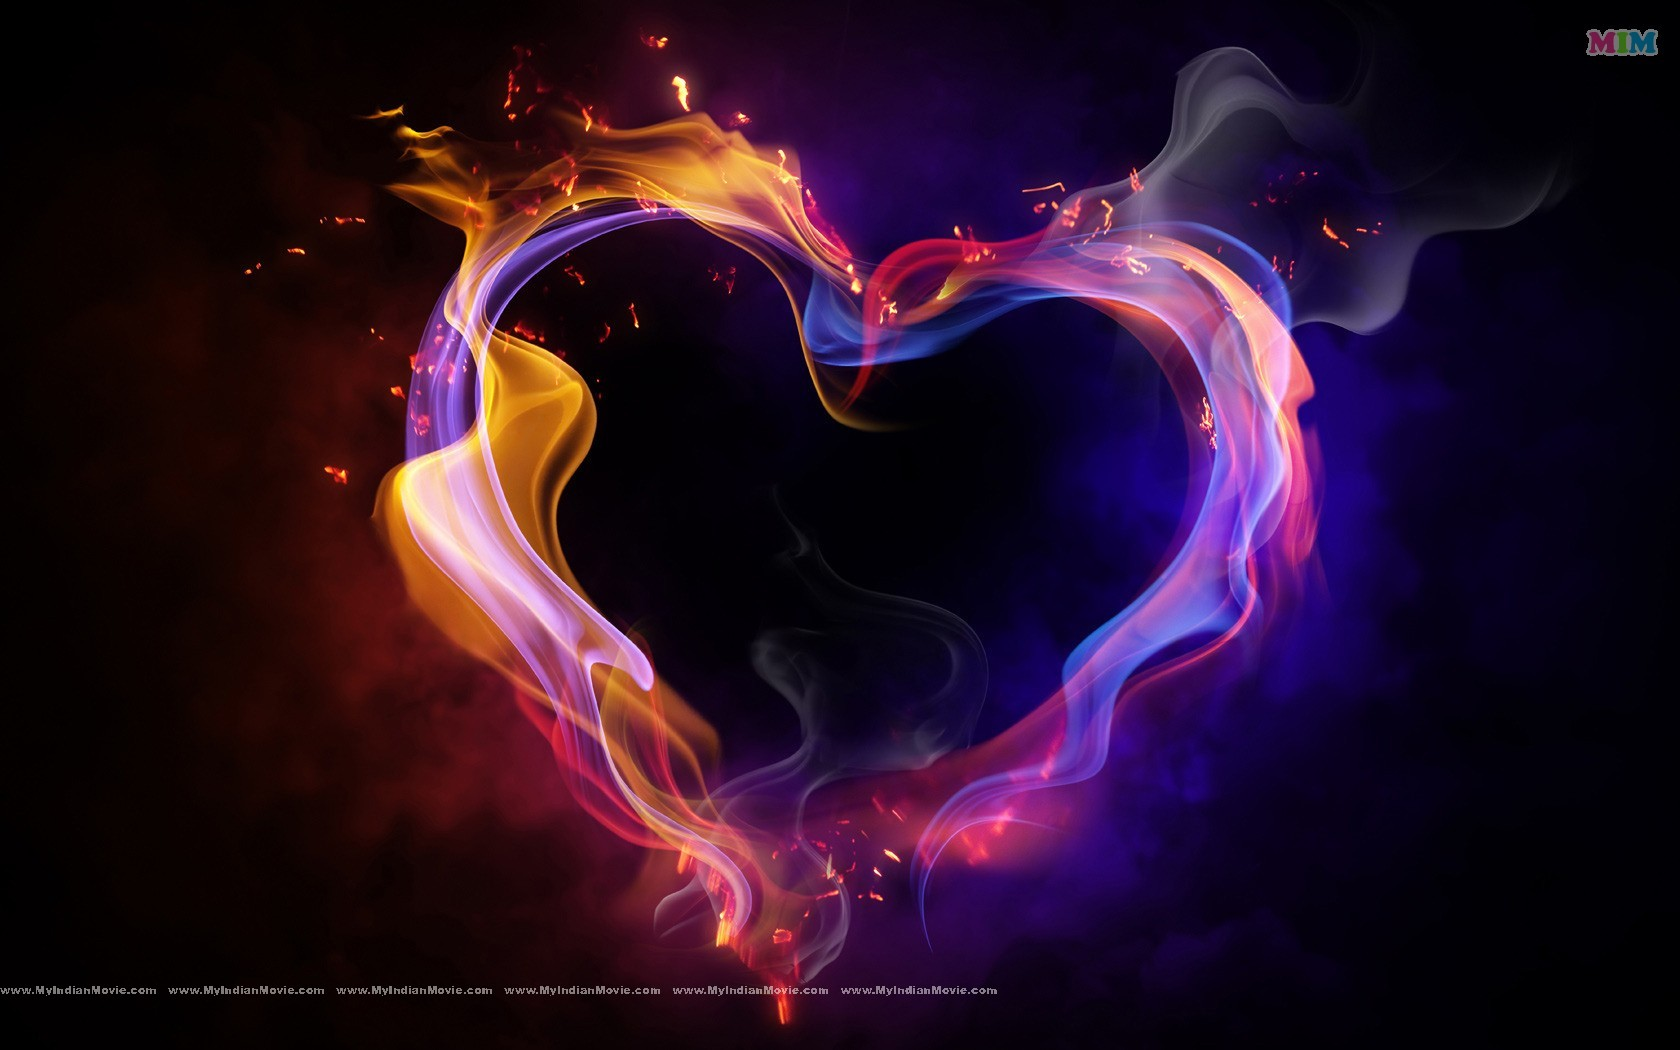 HD Wallpapers Of Love For Desktop